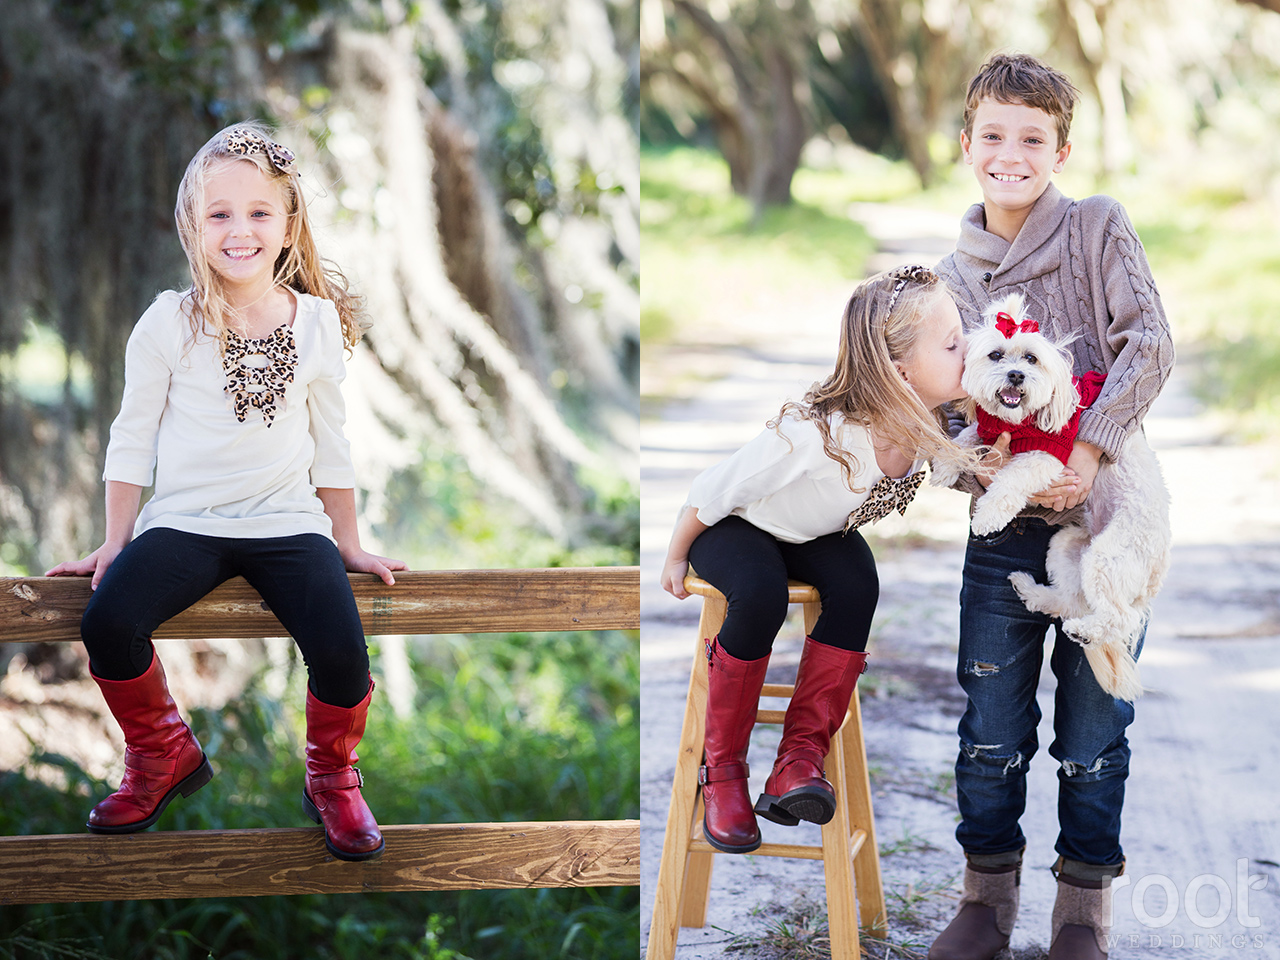 Winter Garden Family Portrait Session 03